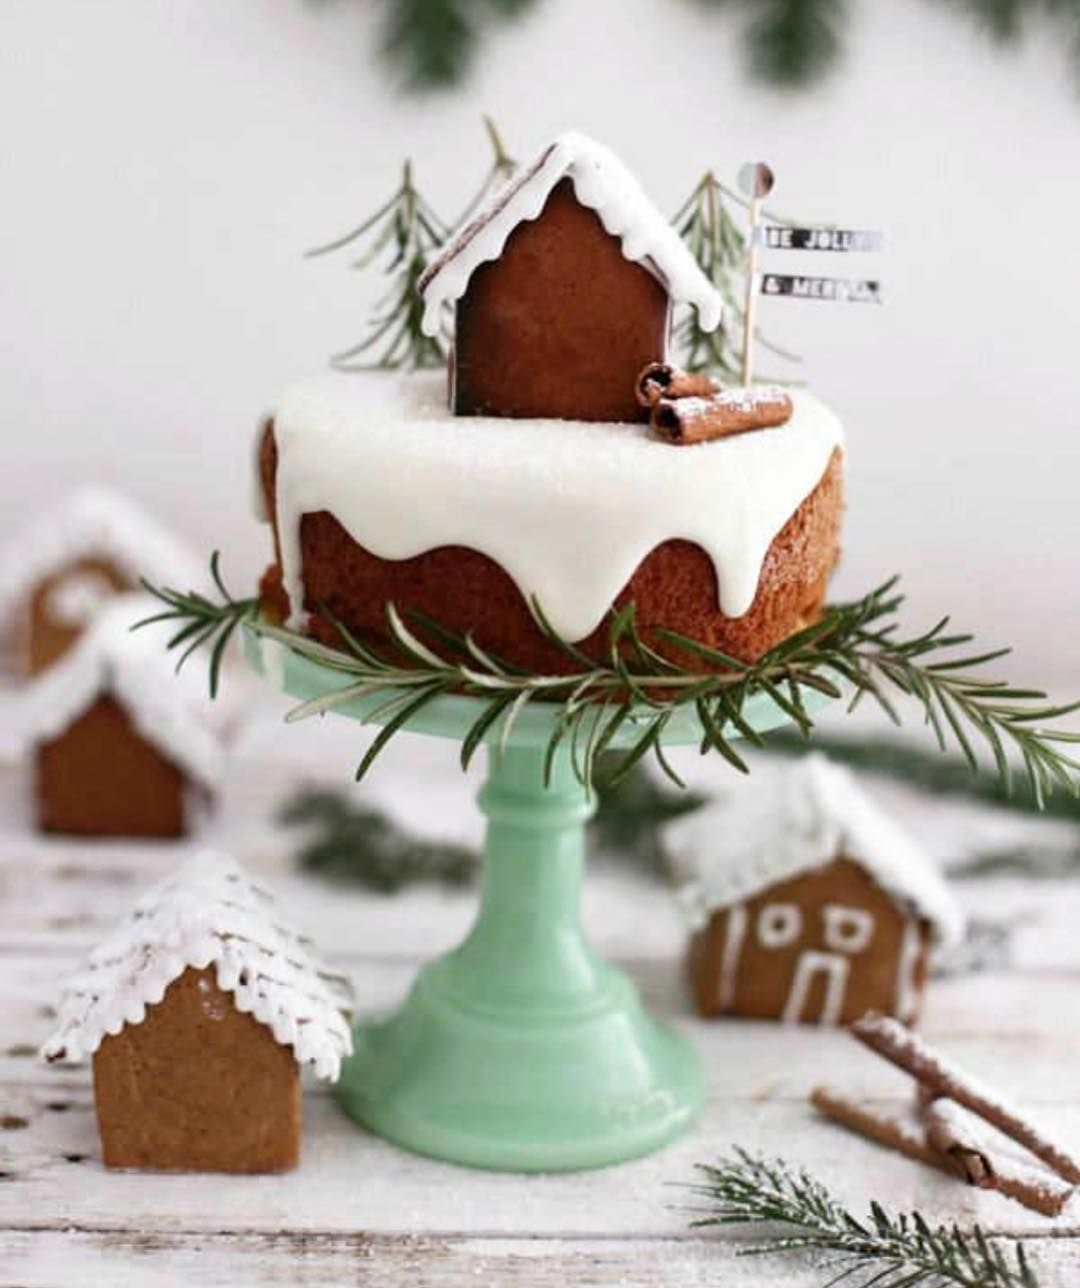 Pin by Margaret Sloc on Home Decor Pinterest Christmas